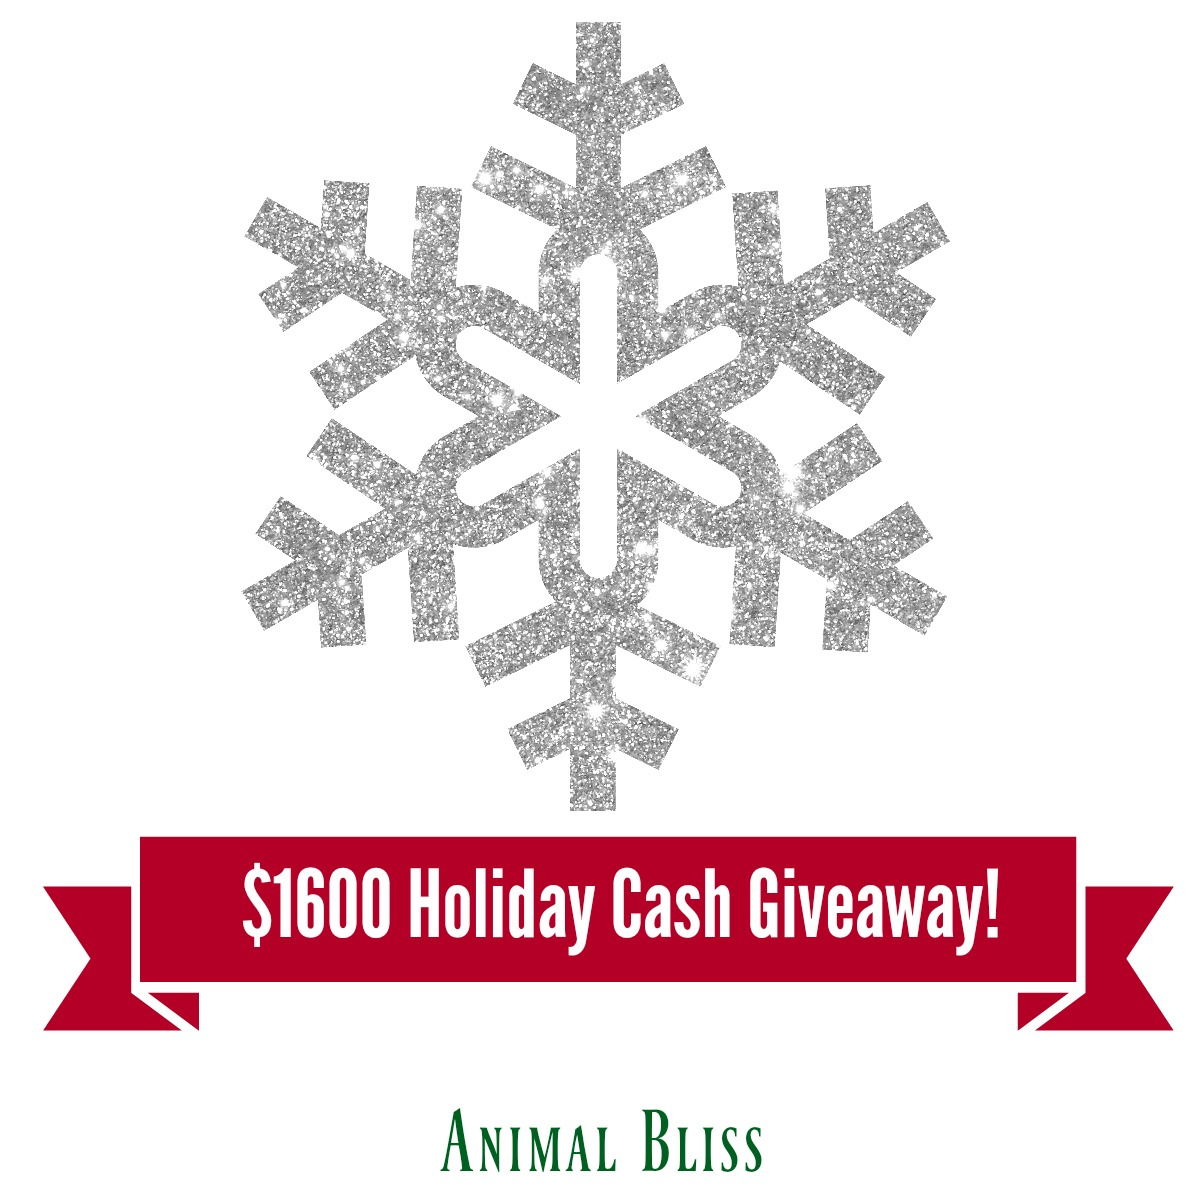 $1600 Holiday Cash Giveaway